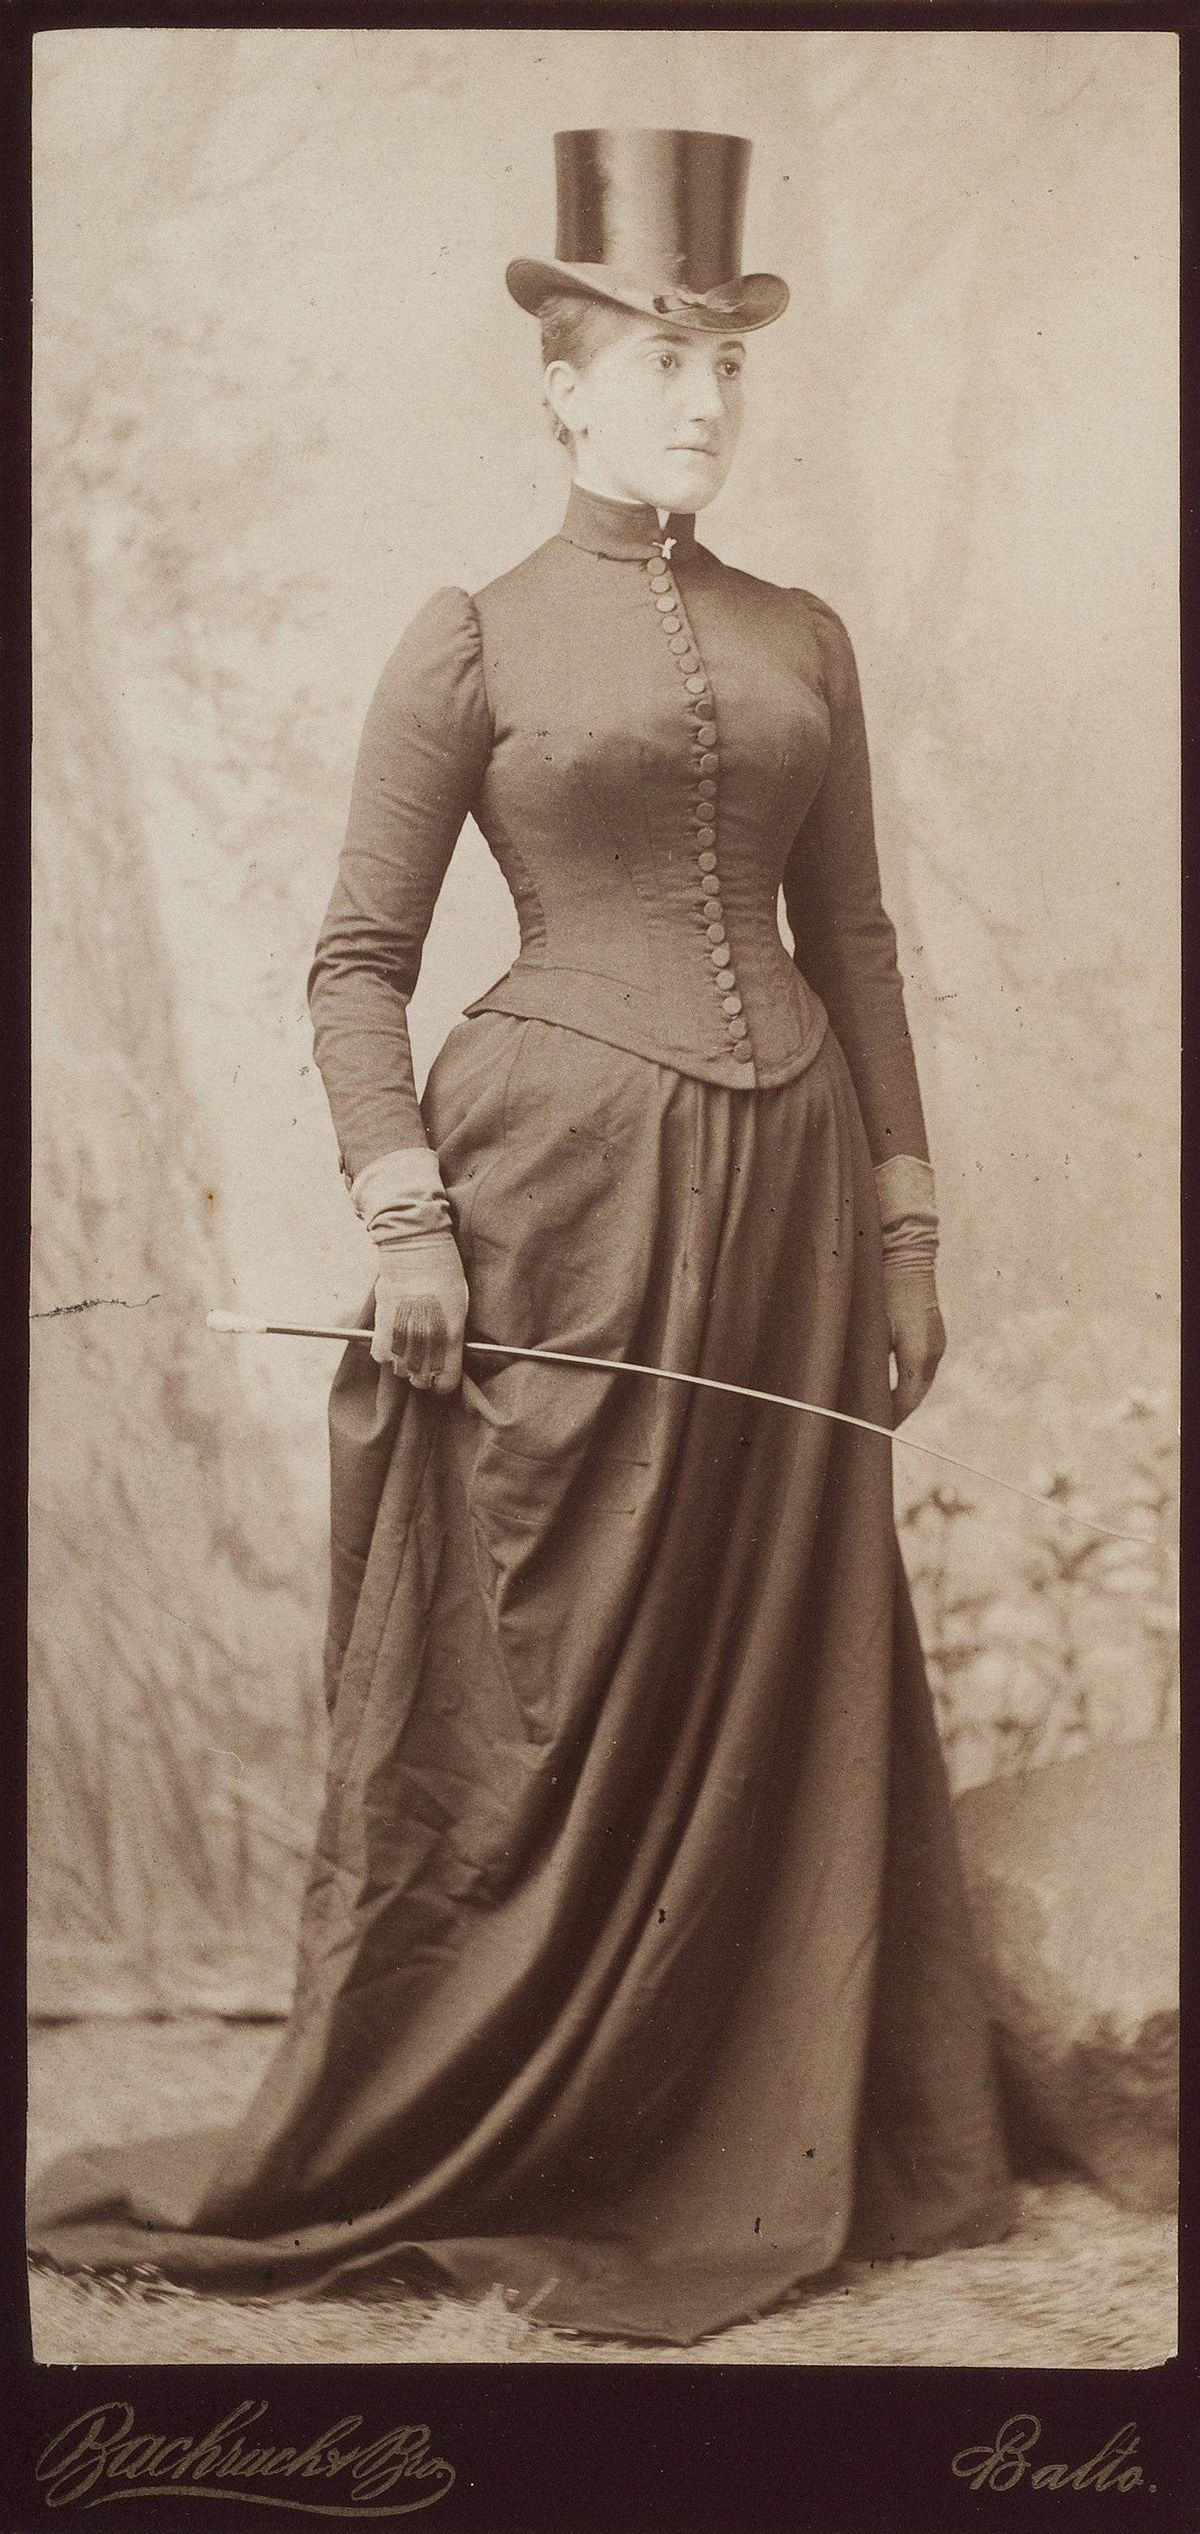 Etta Cone wearing a riding habit, circa 1889, Bachrach Bros. Dr. Claribel and Miss Etta Cone Papers, Archives and Manuscripts Collections, The Baltimore Museum of Art.